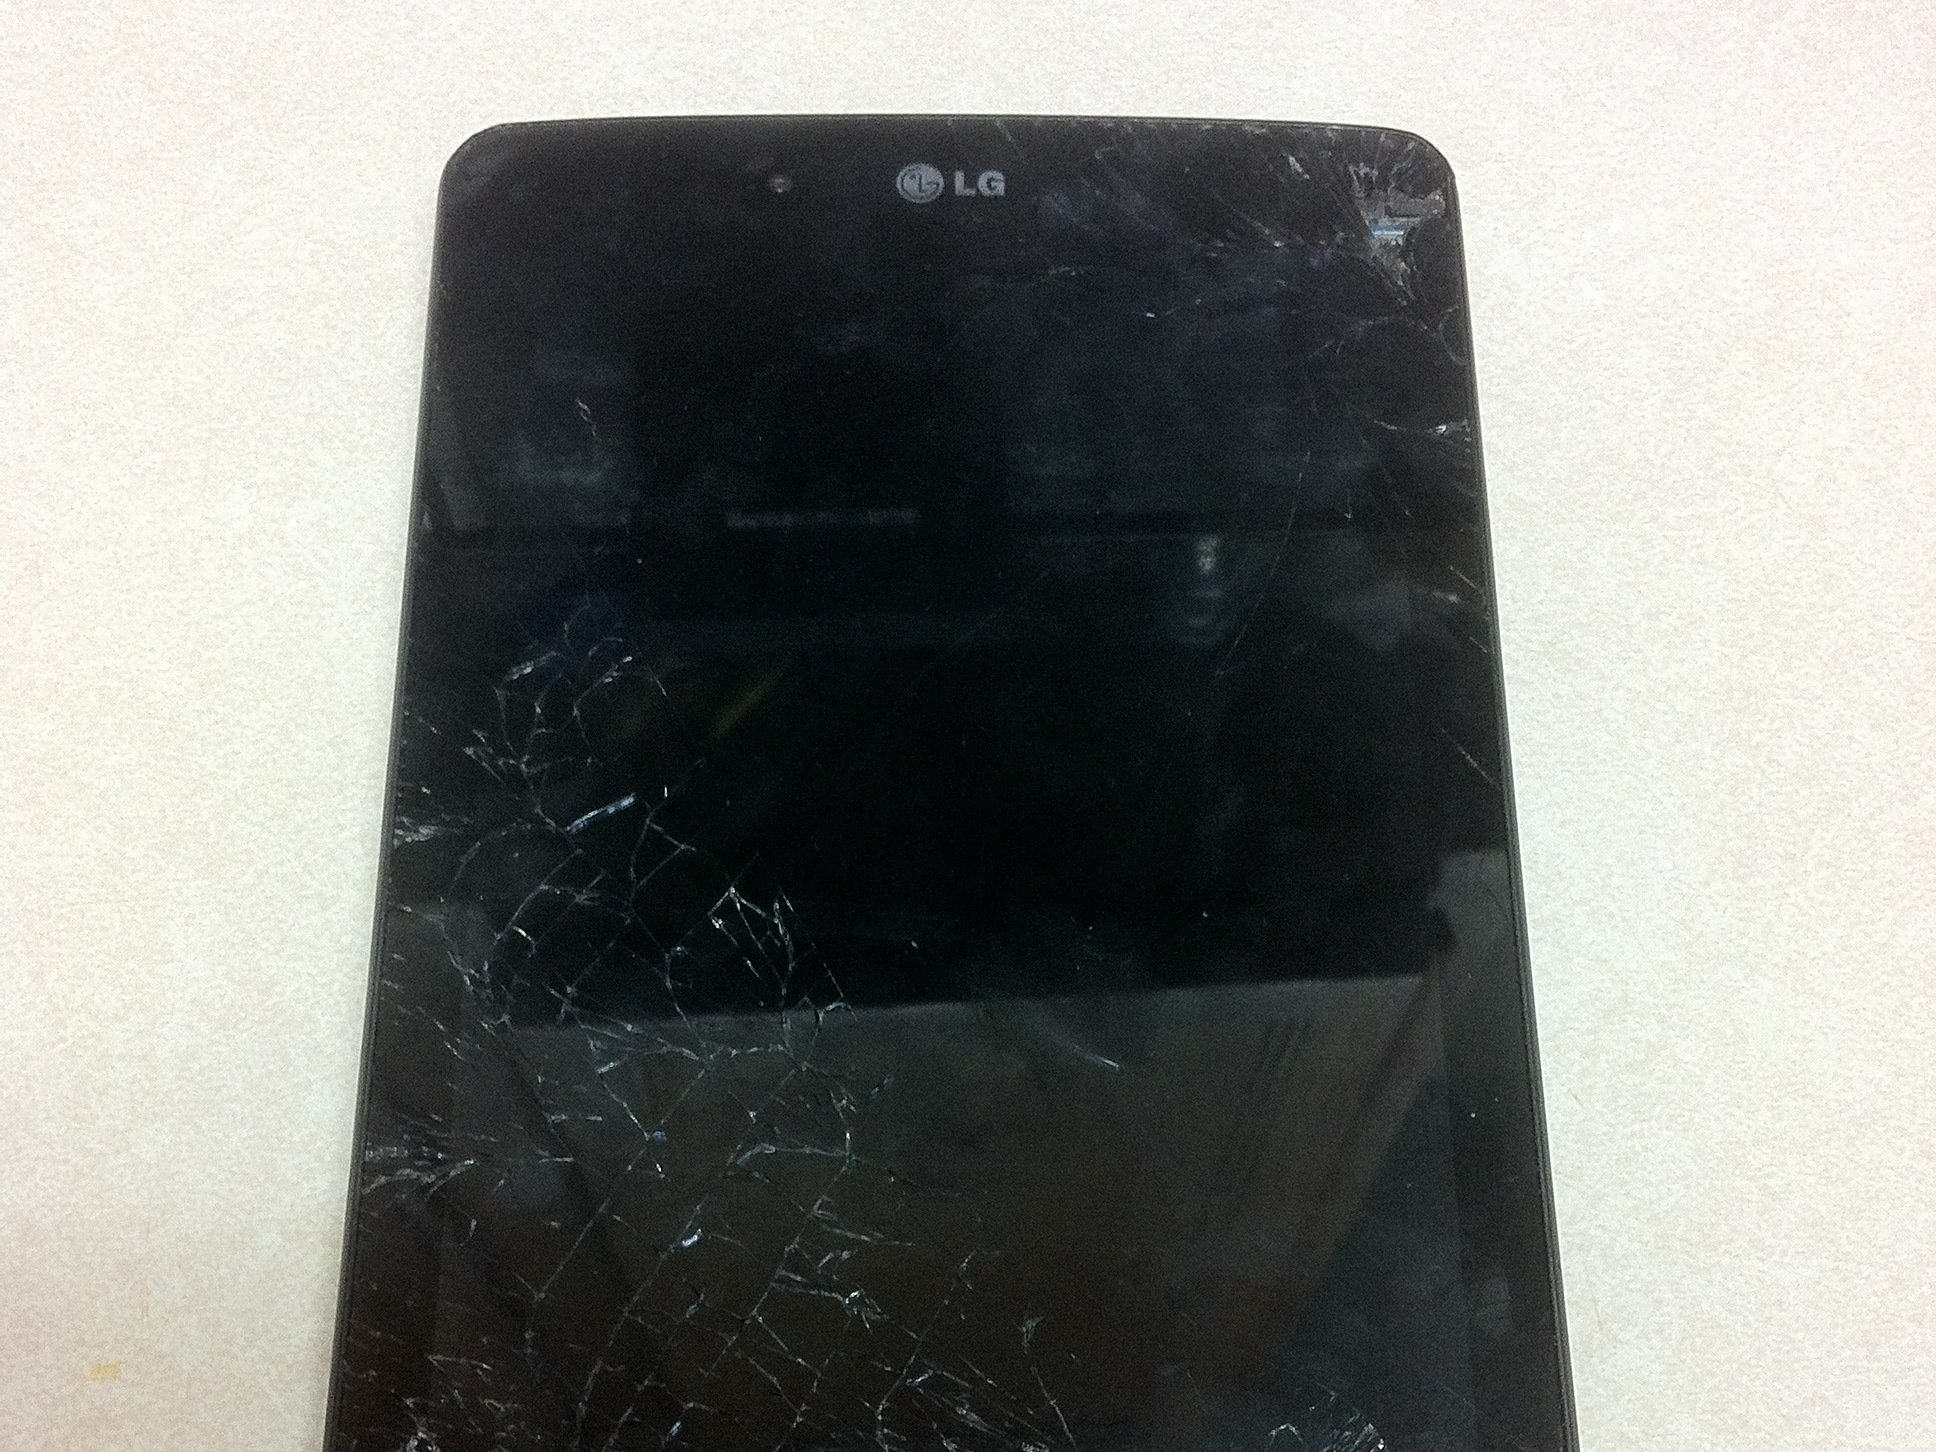 LG G Pad 7 0 LTE Front Screen Replacement - iFixit Repair Guide